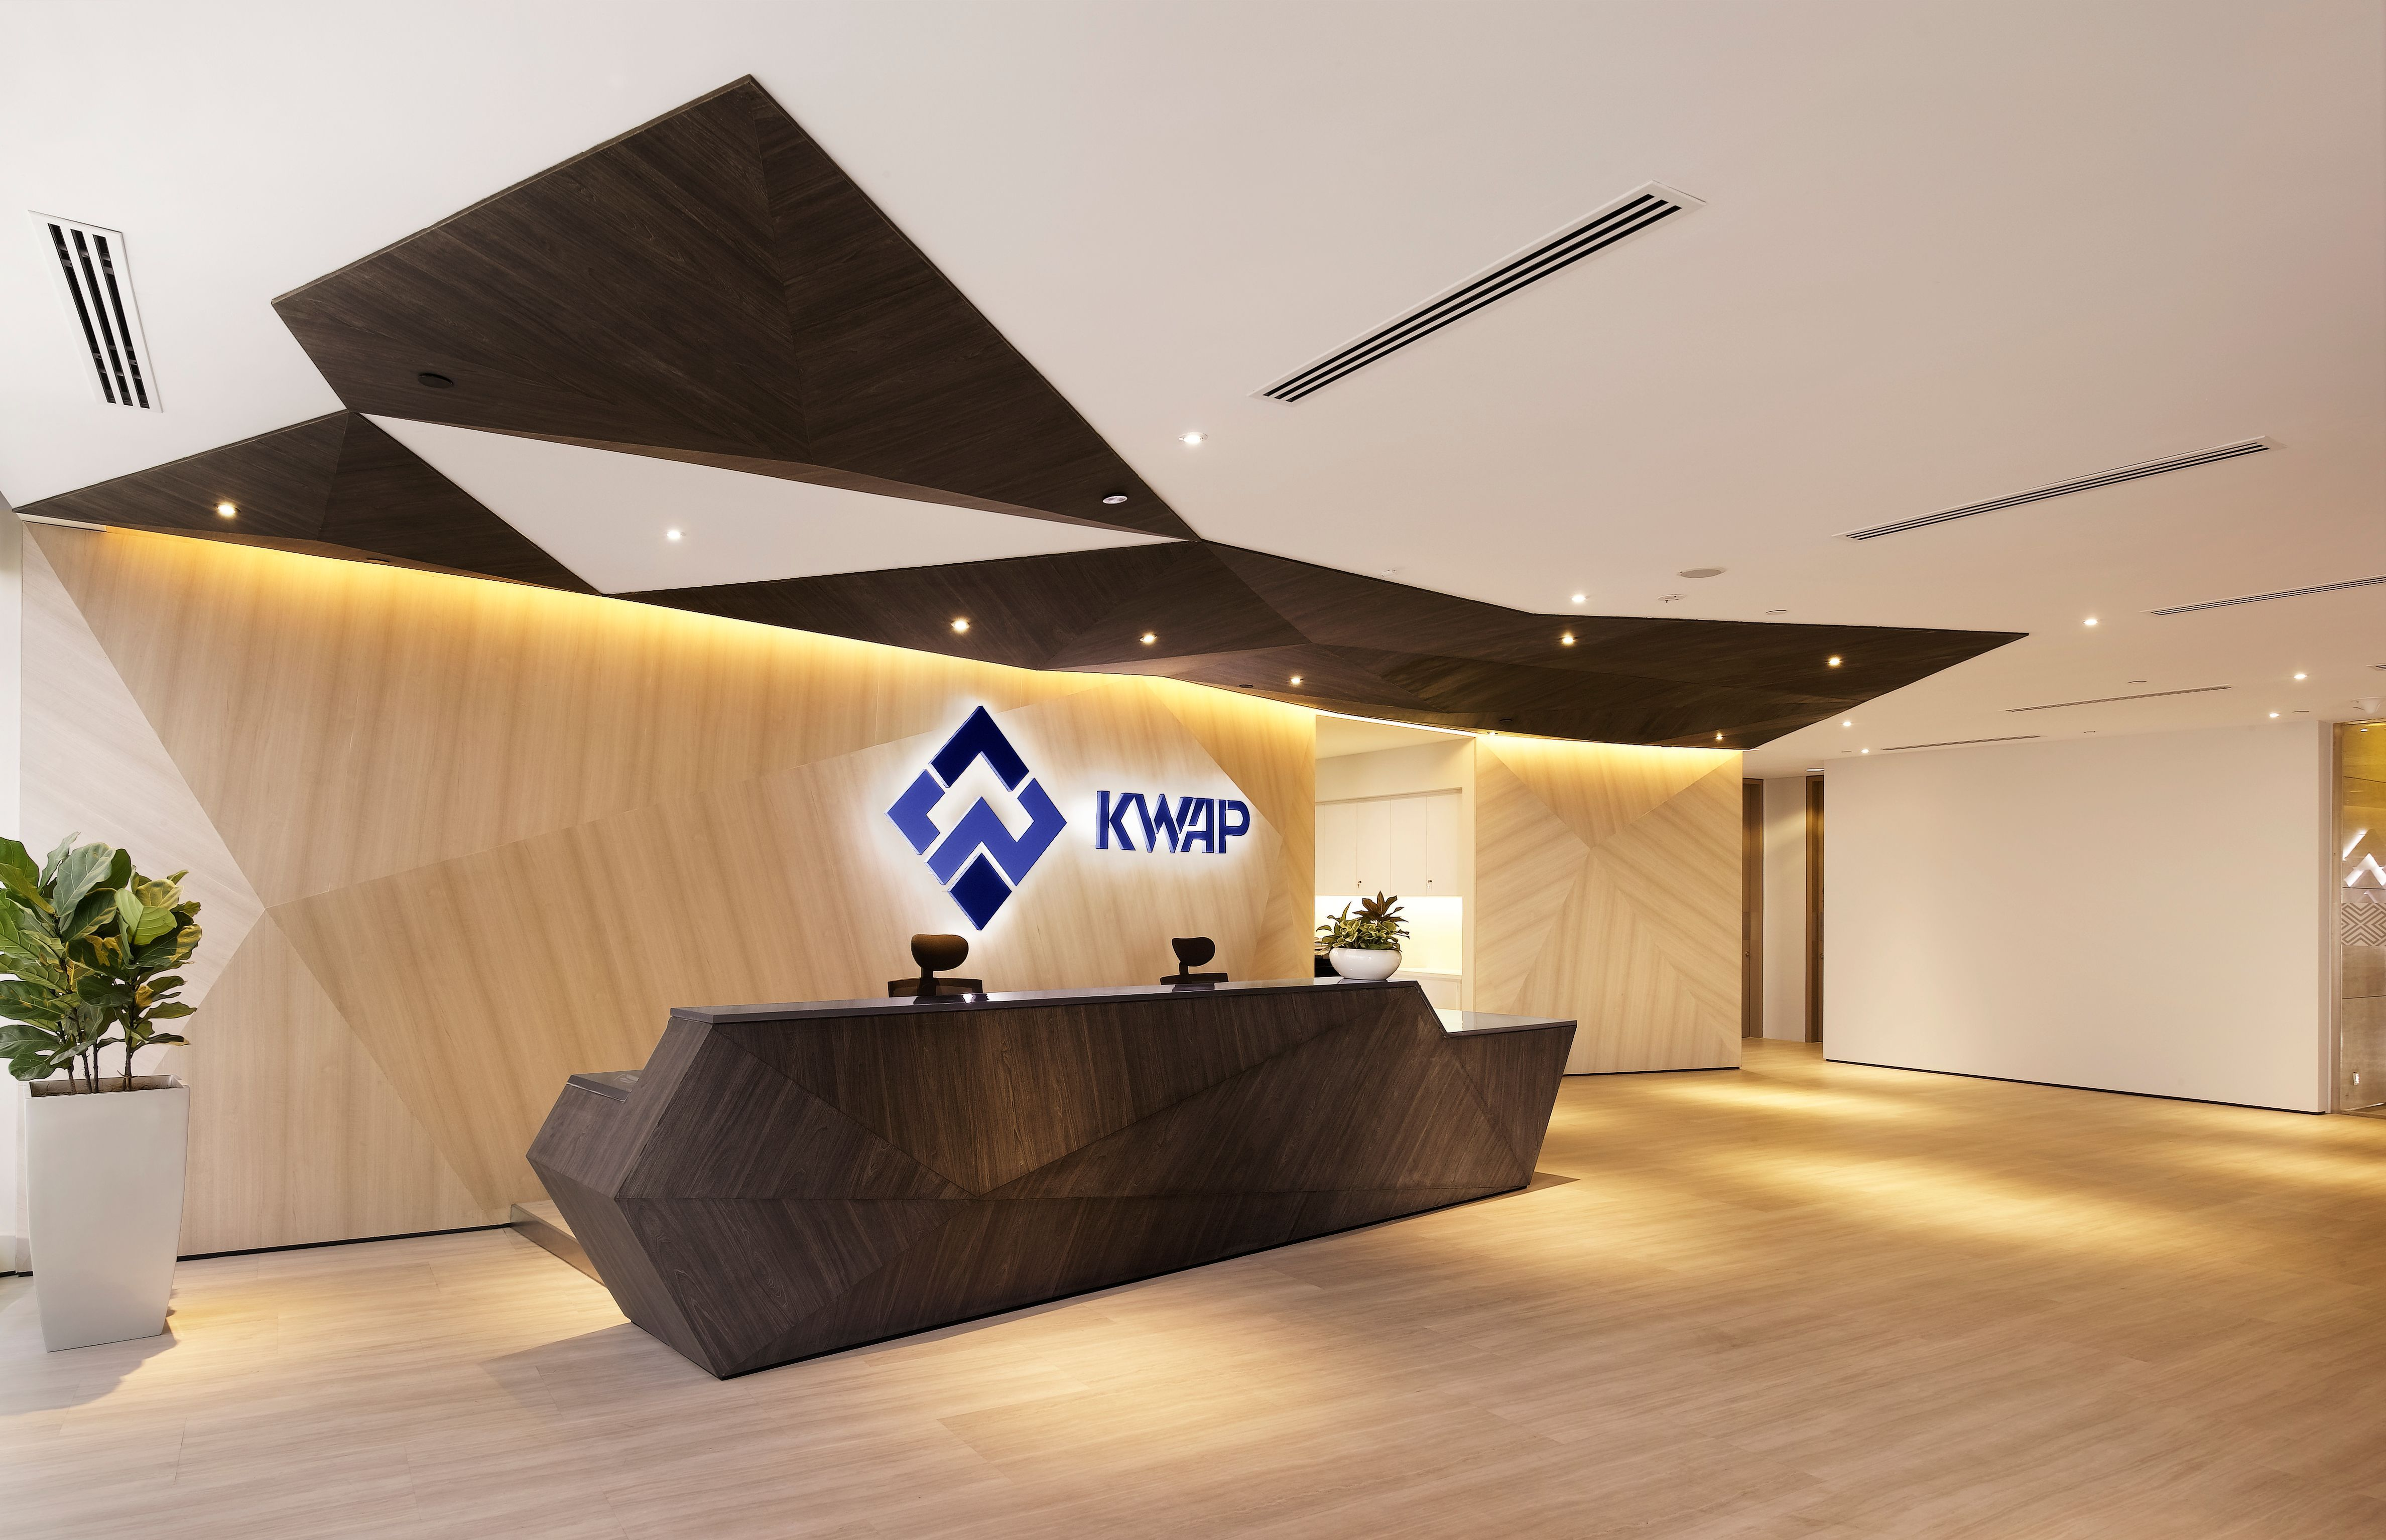 Kwap In Kuala Lumpur Malaysia Design And Build Project By The